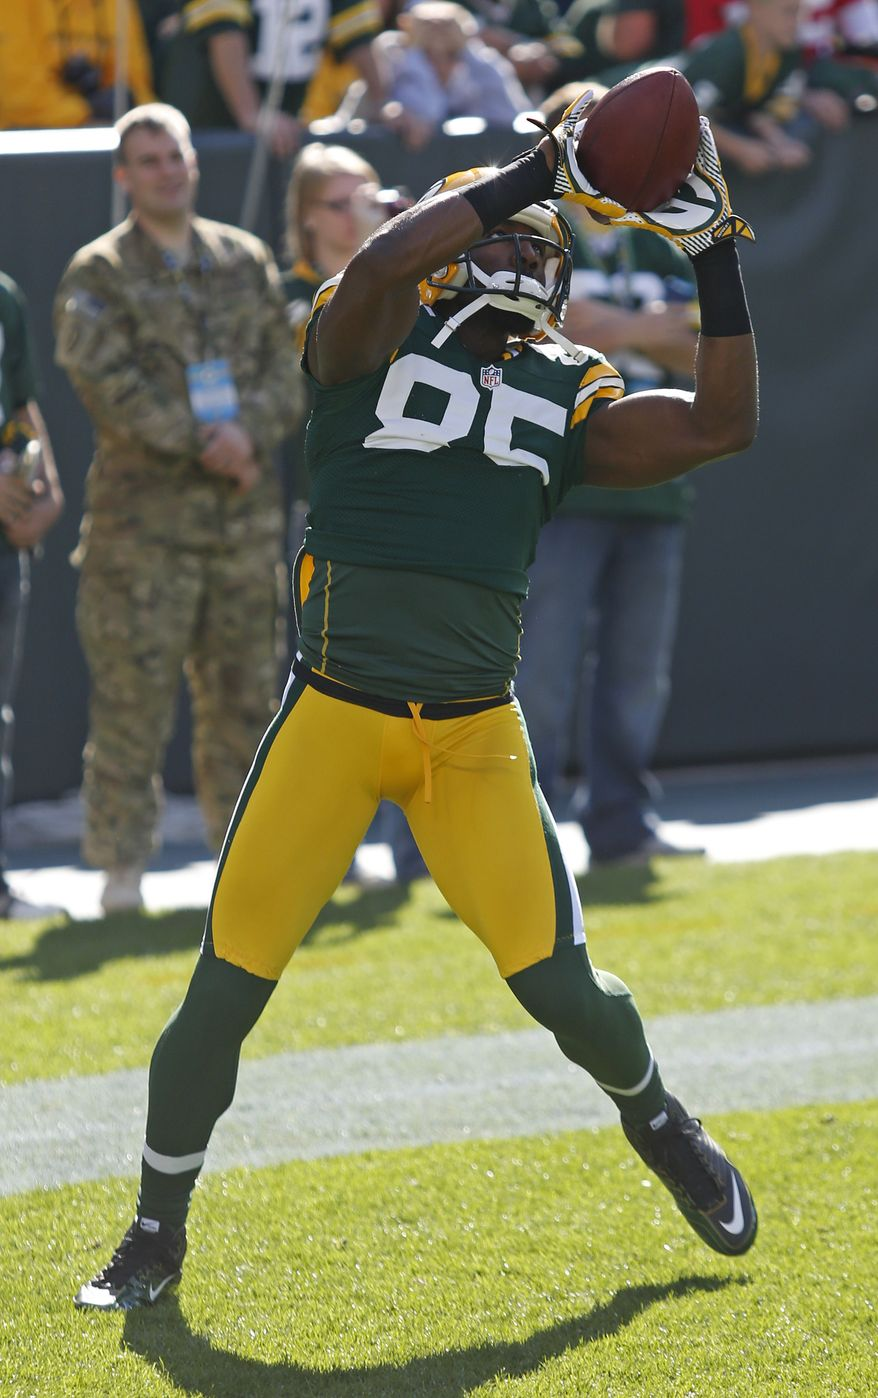 Green Bay Packers wide receiver Greg Jennings catches a ball in warm ups prior to an NFL football game against the New Orleans Saints Sunday, Sept. 30, 2012, in Green Bay, Wis. (AP Photo/Matt Ludtke)